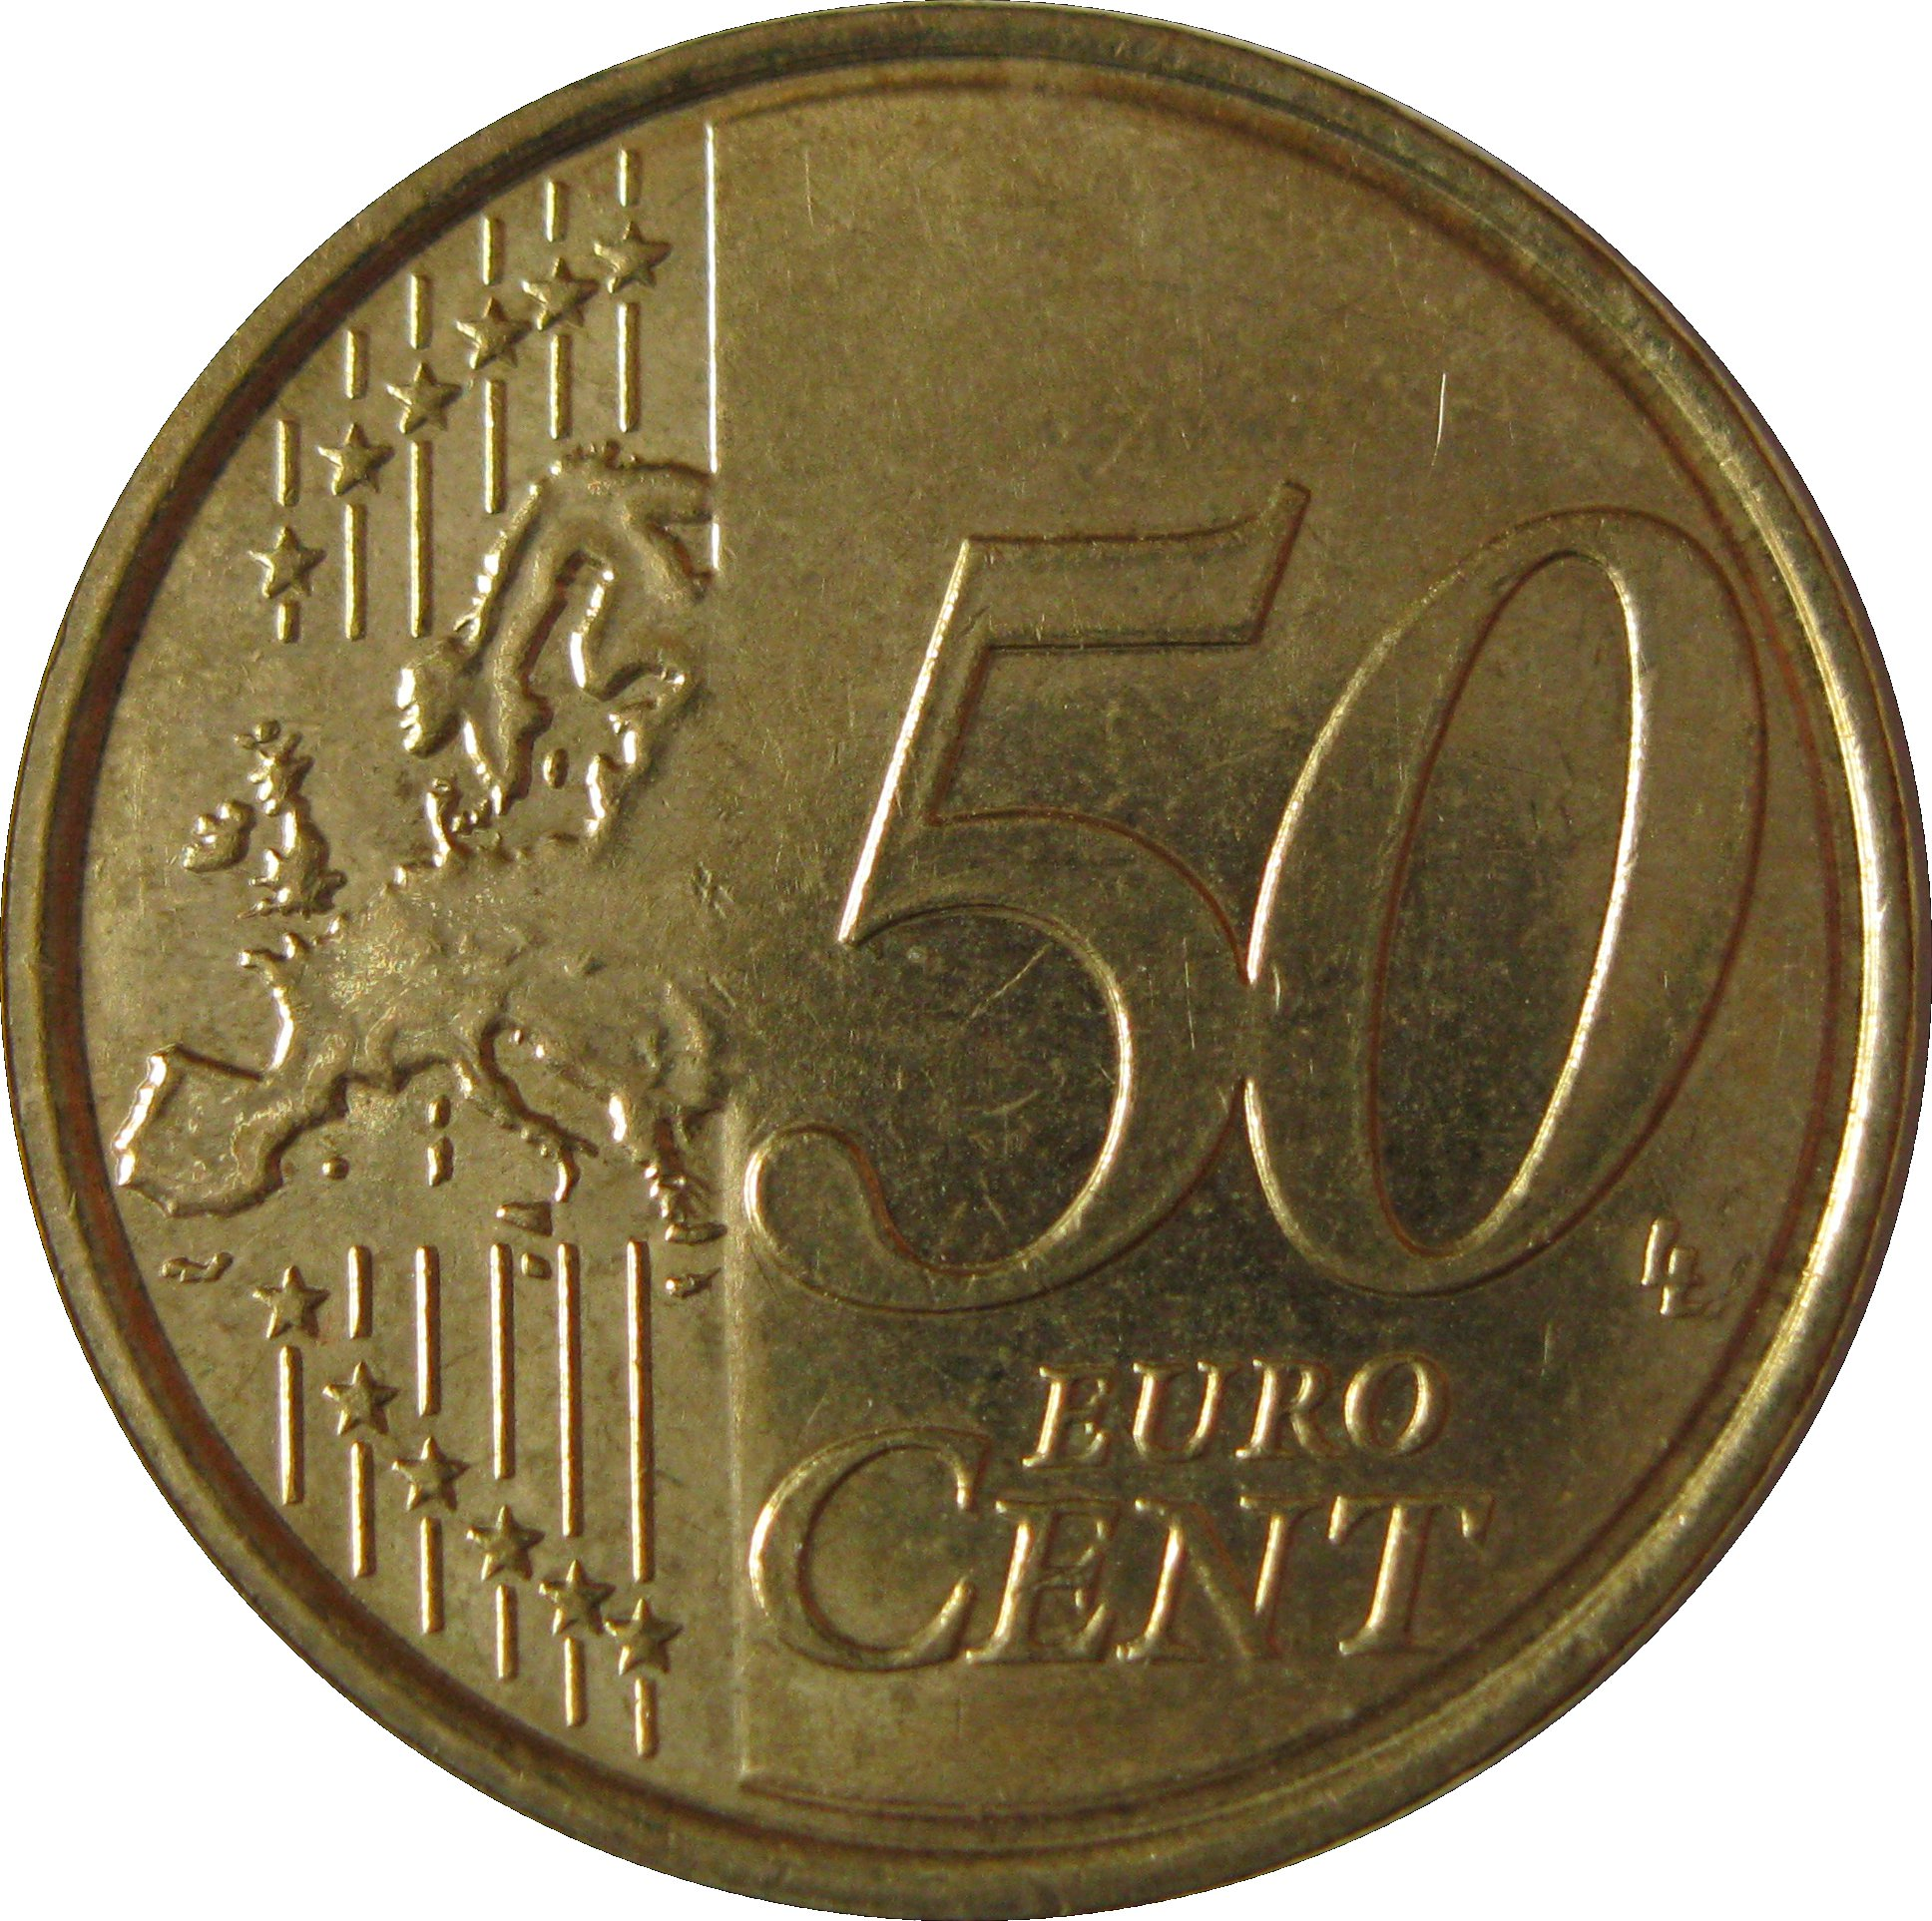 Euro Coins Common Side Value Image 2007 Present Main 0 20 And 50 Are Made Of While Numbers Counterfeit 1 Cent